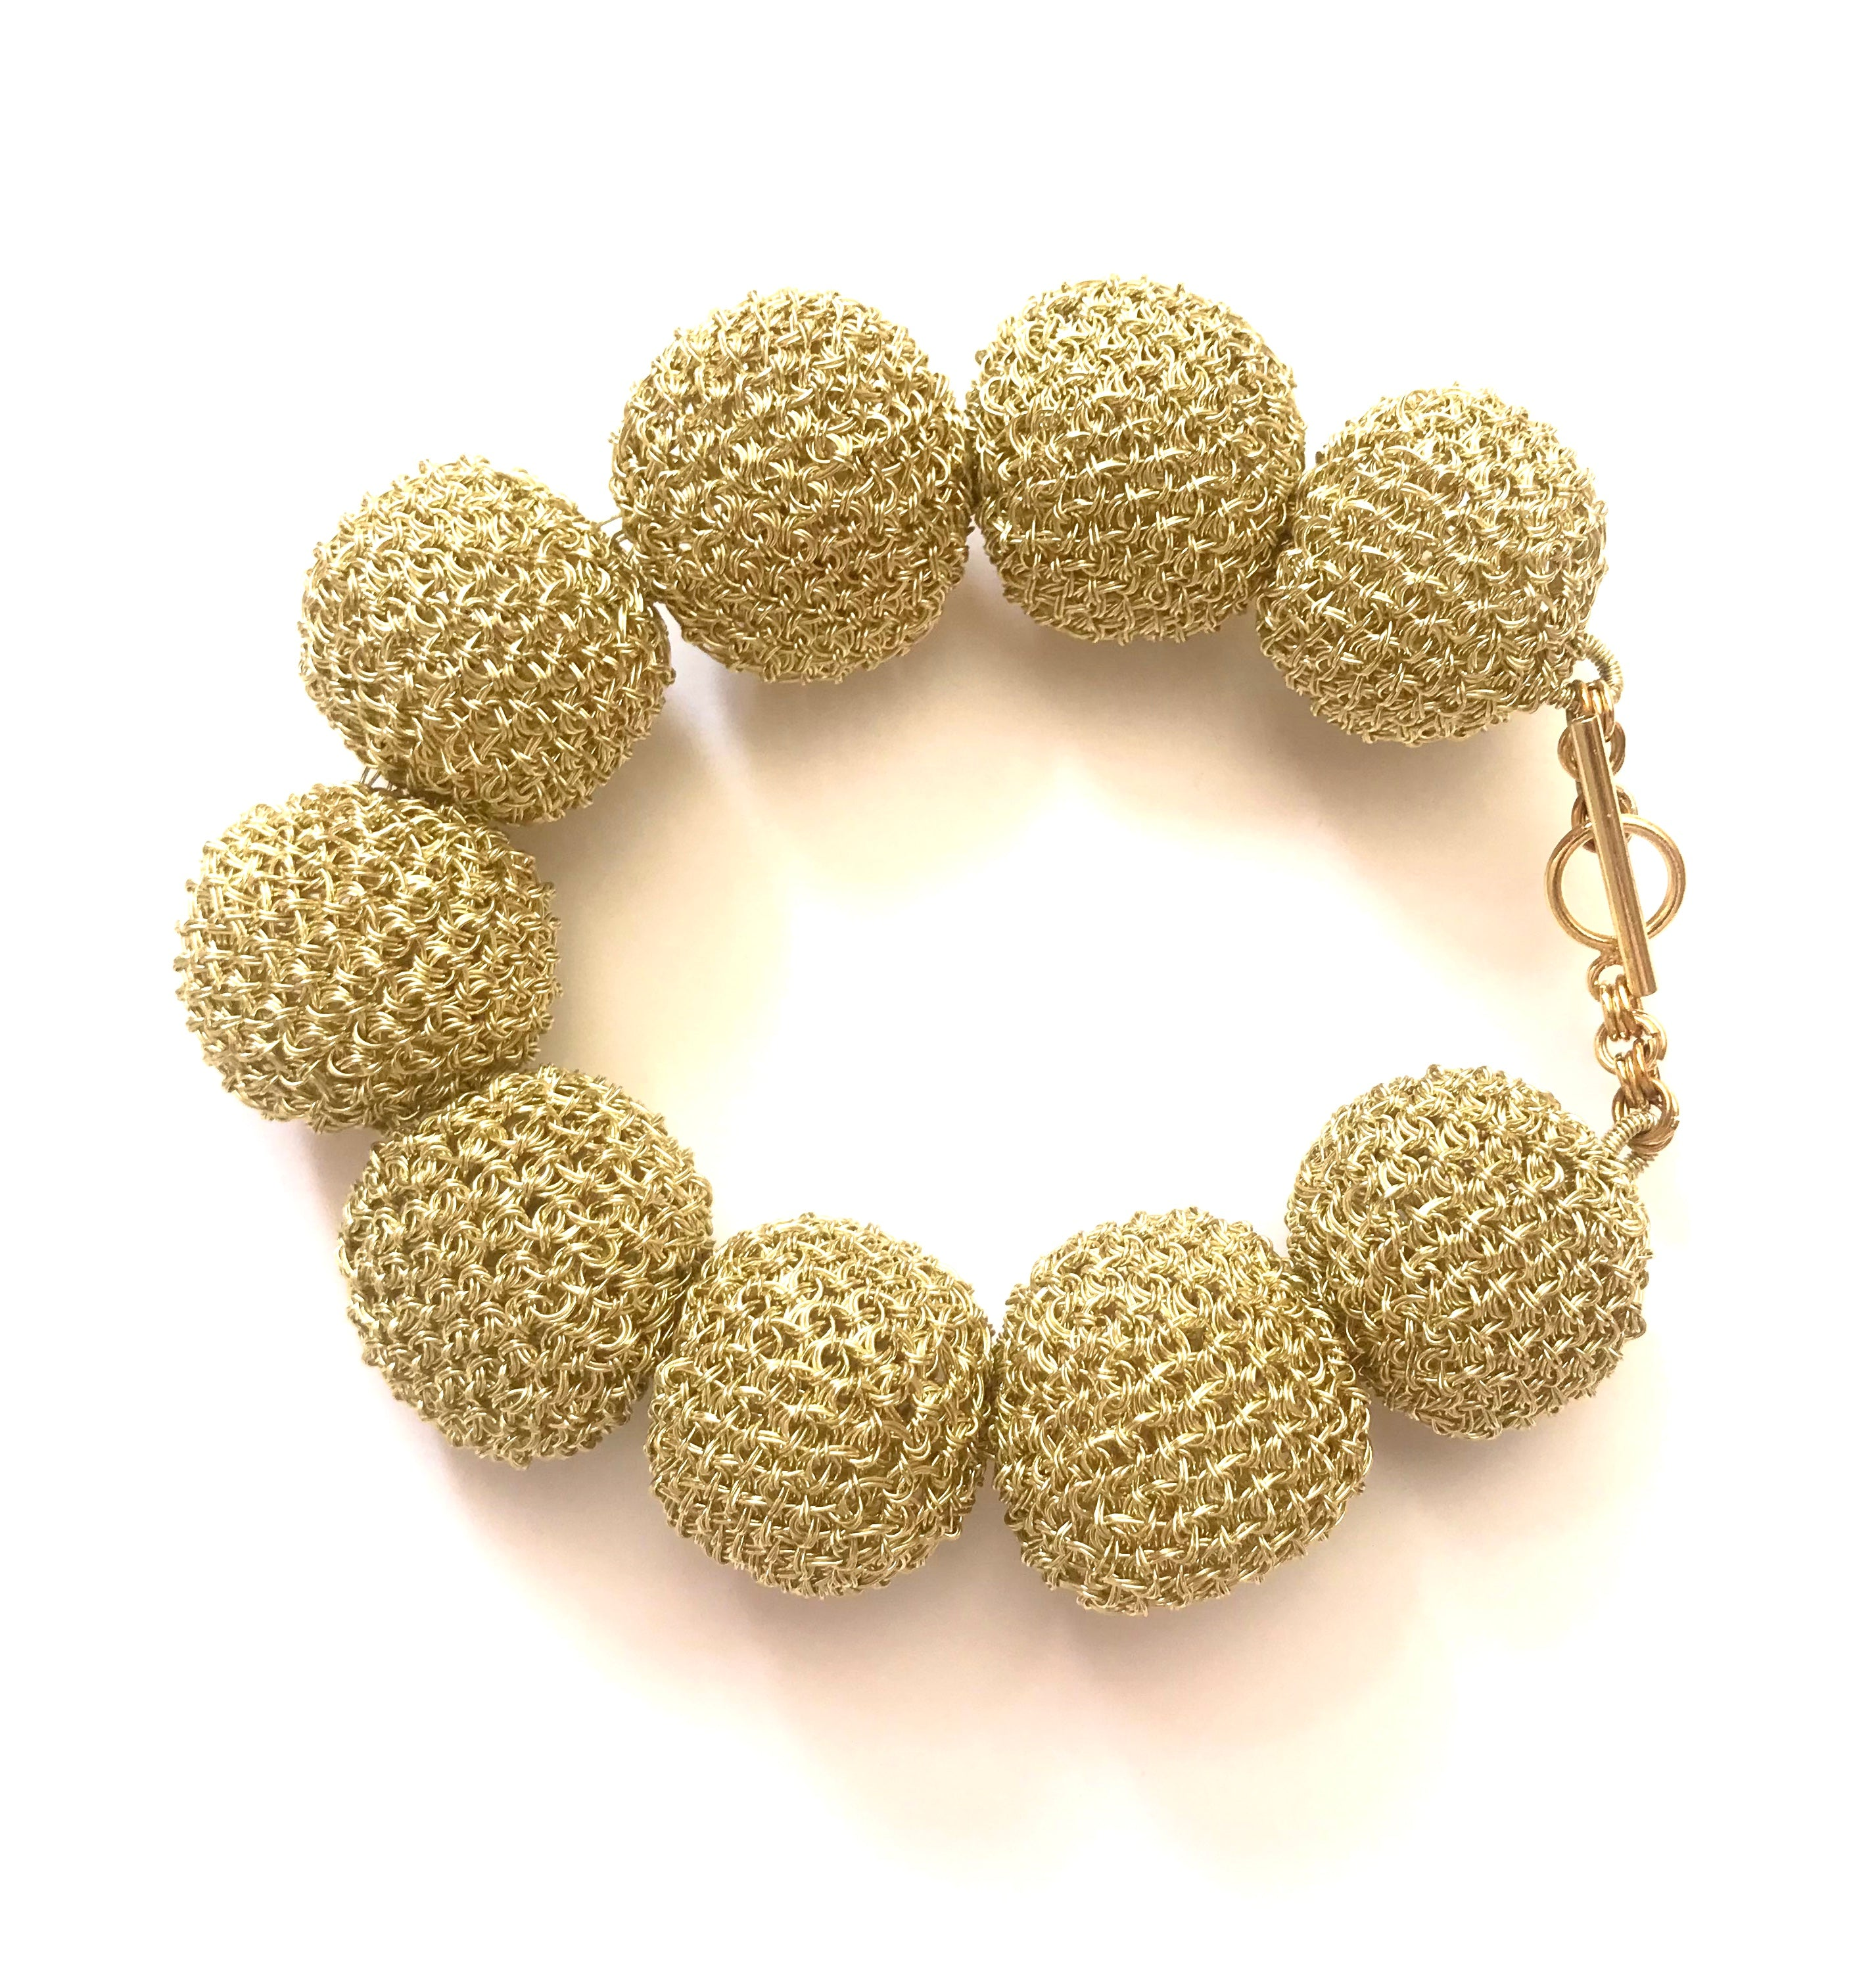 Perle D'Oro Bracelet, Venice collection